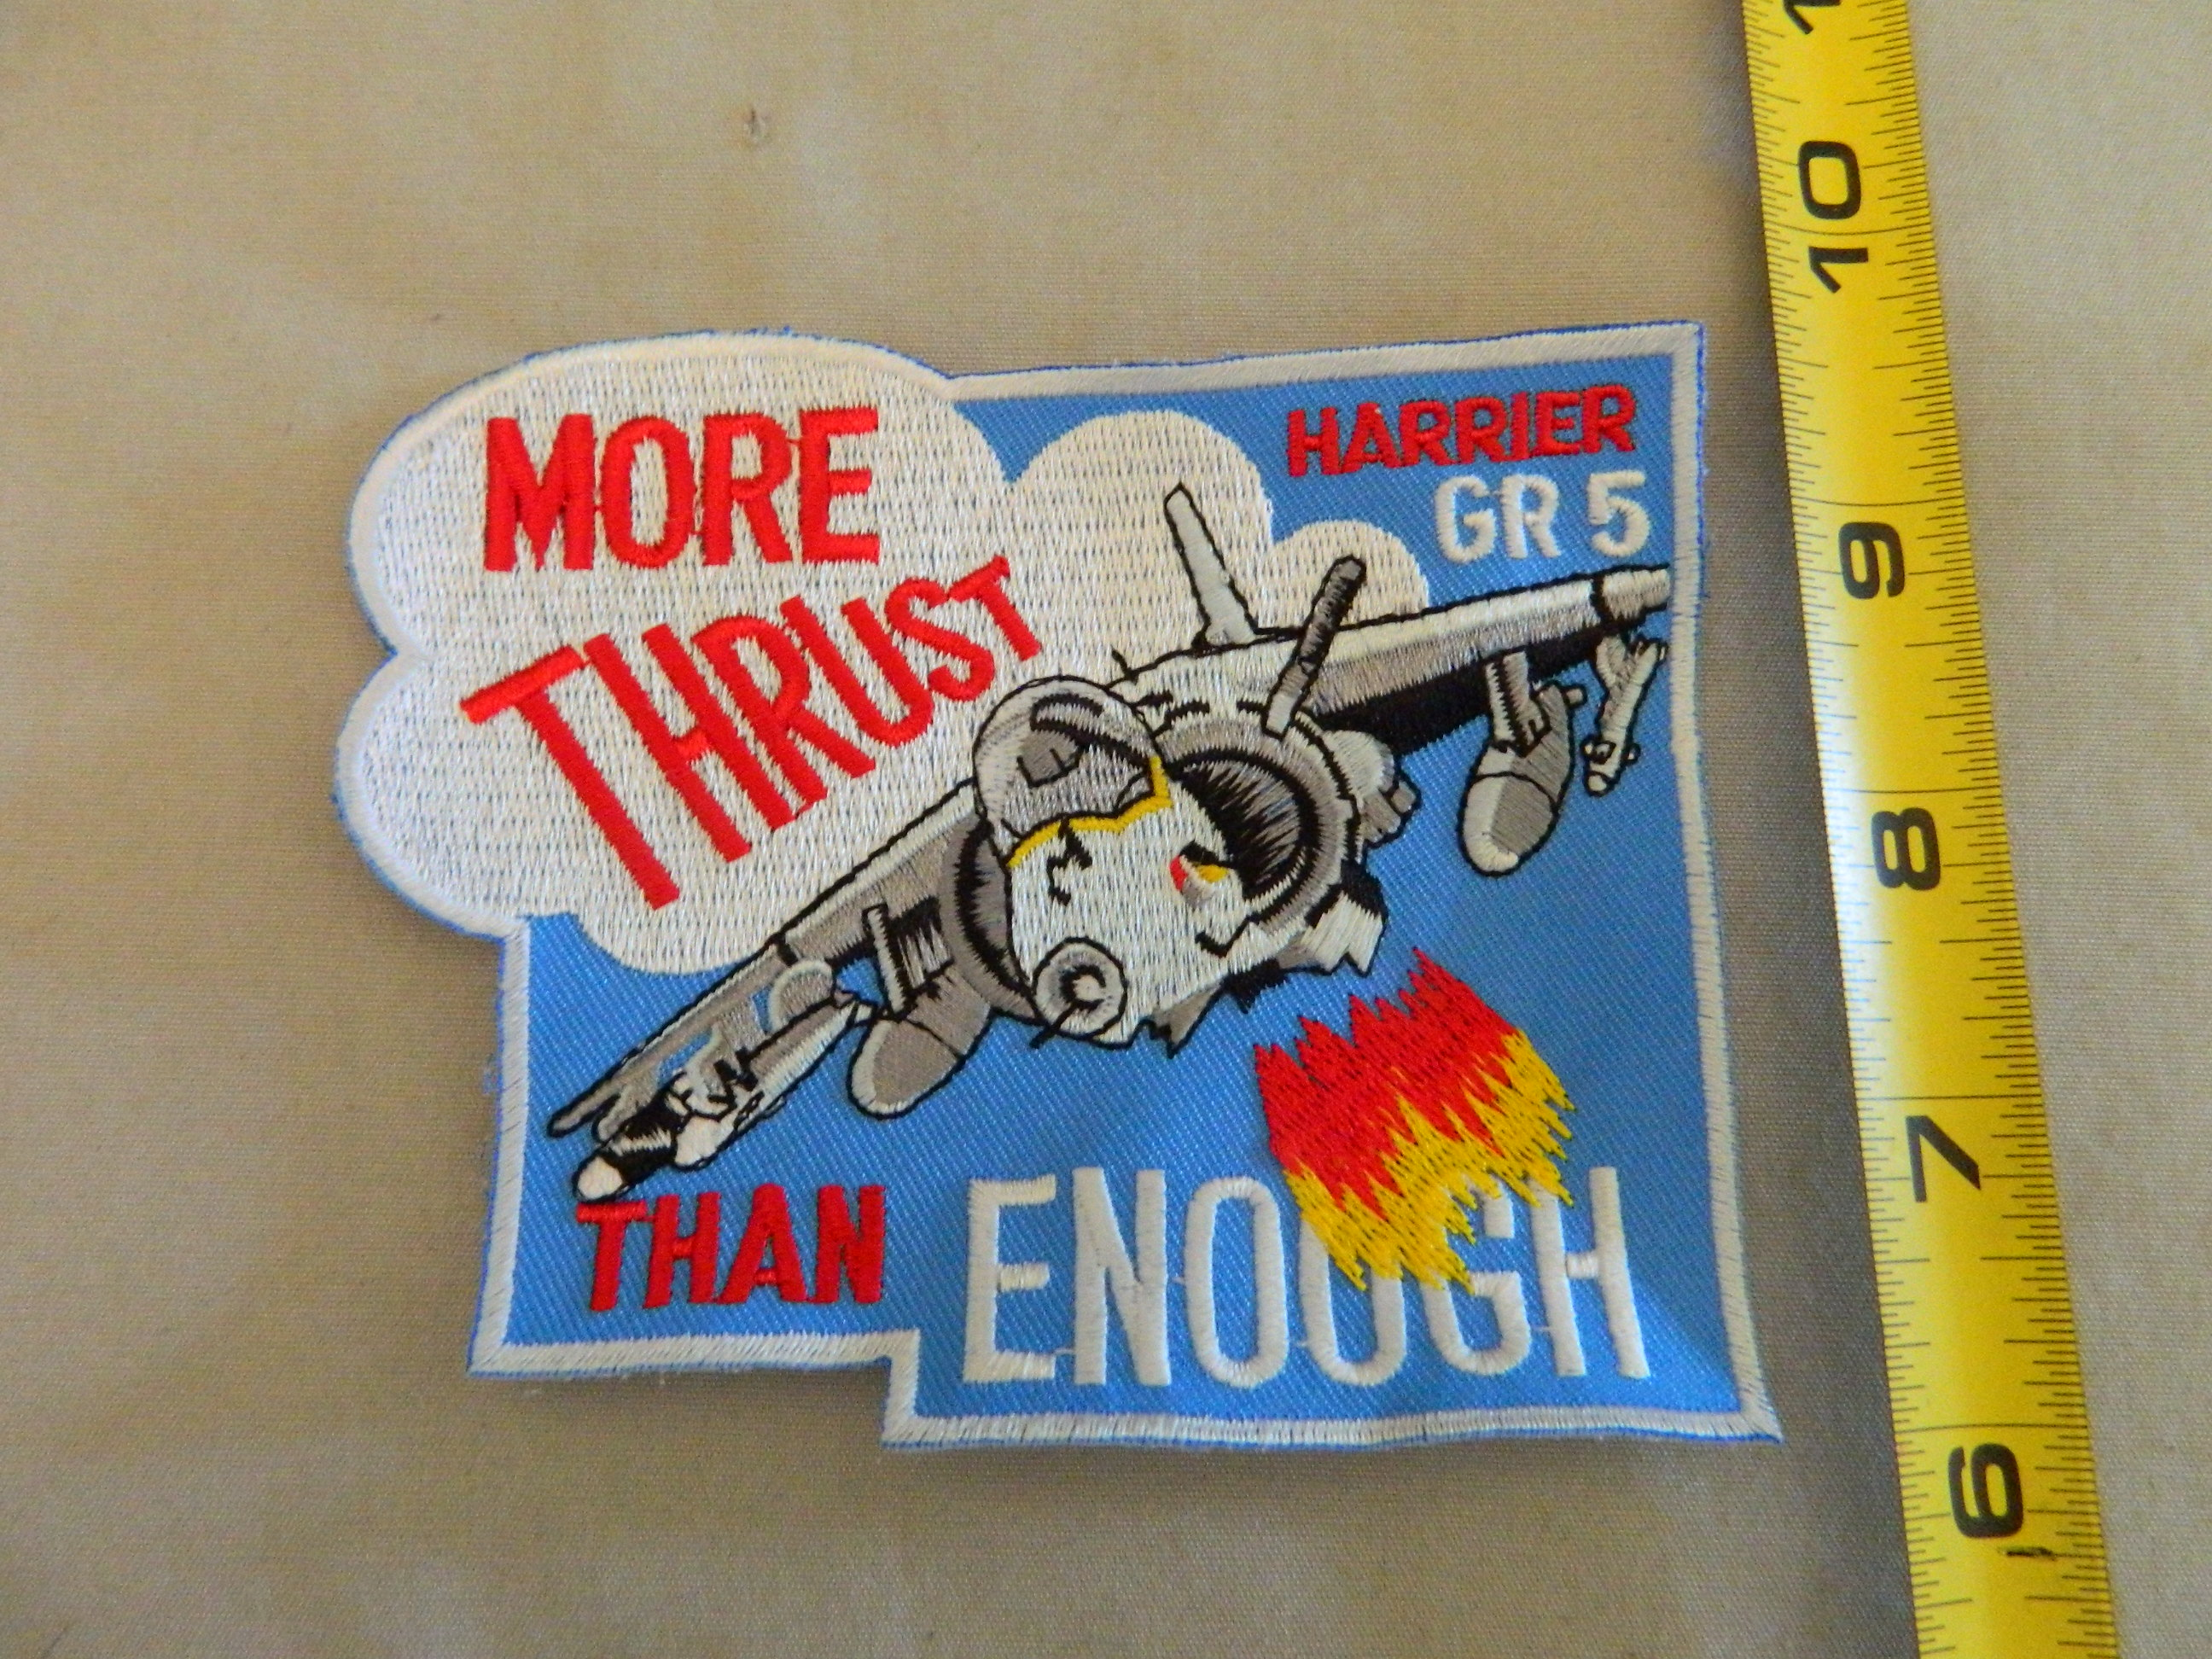 USN: Harrier GR-5 More Thrust Than Enough Patch